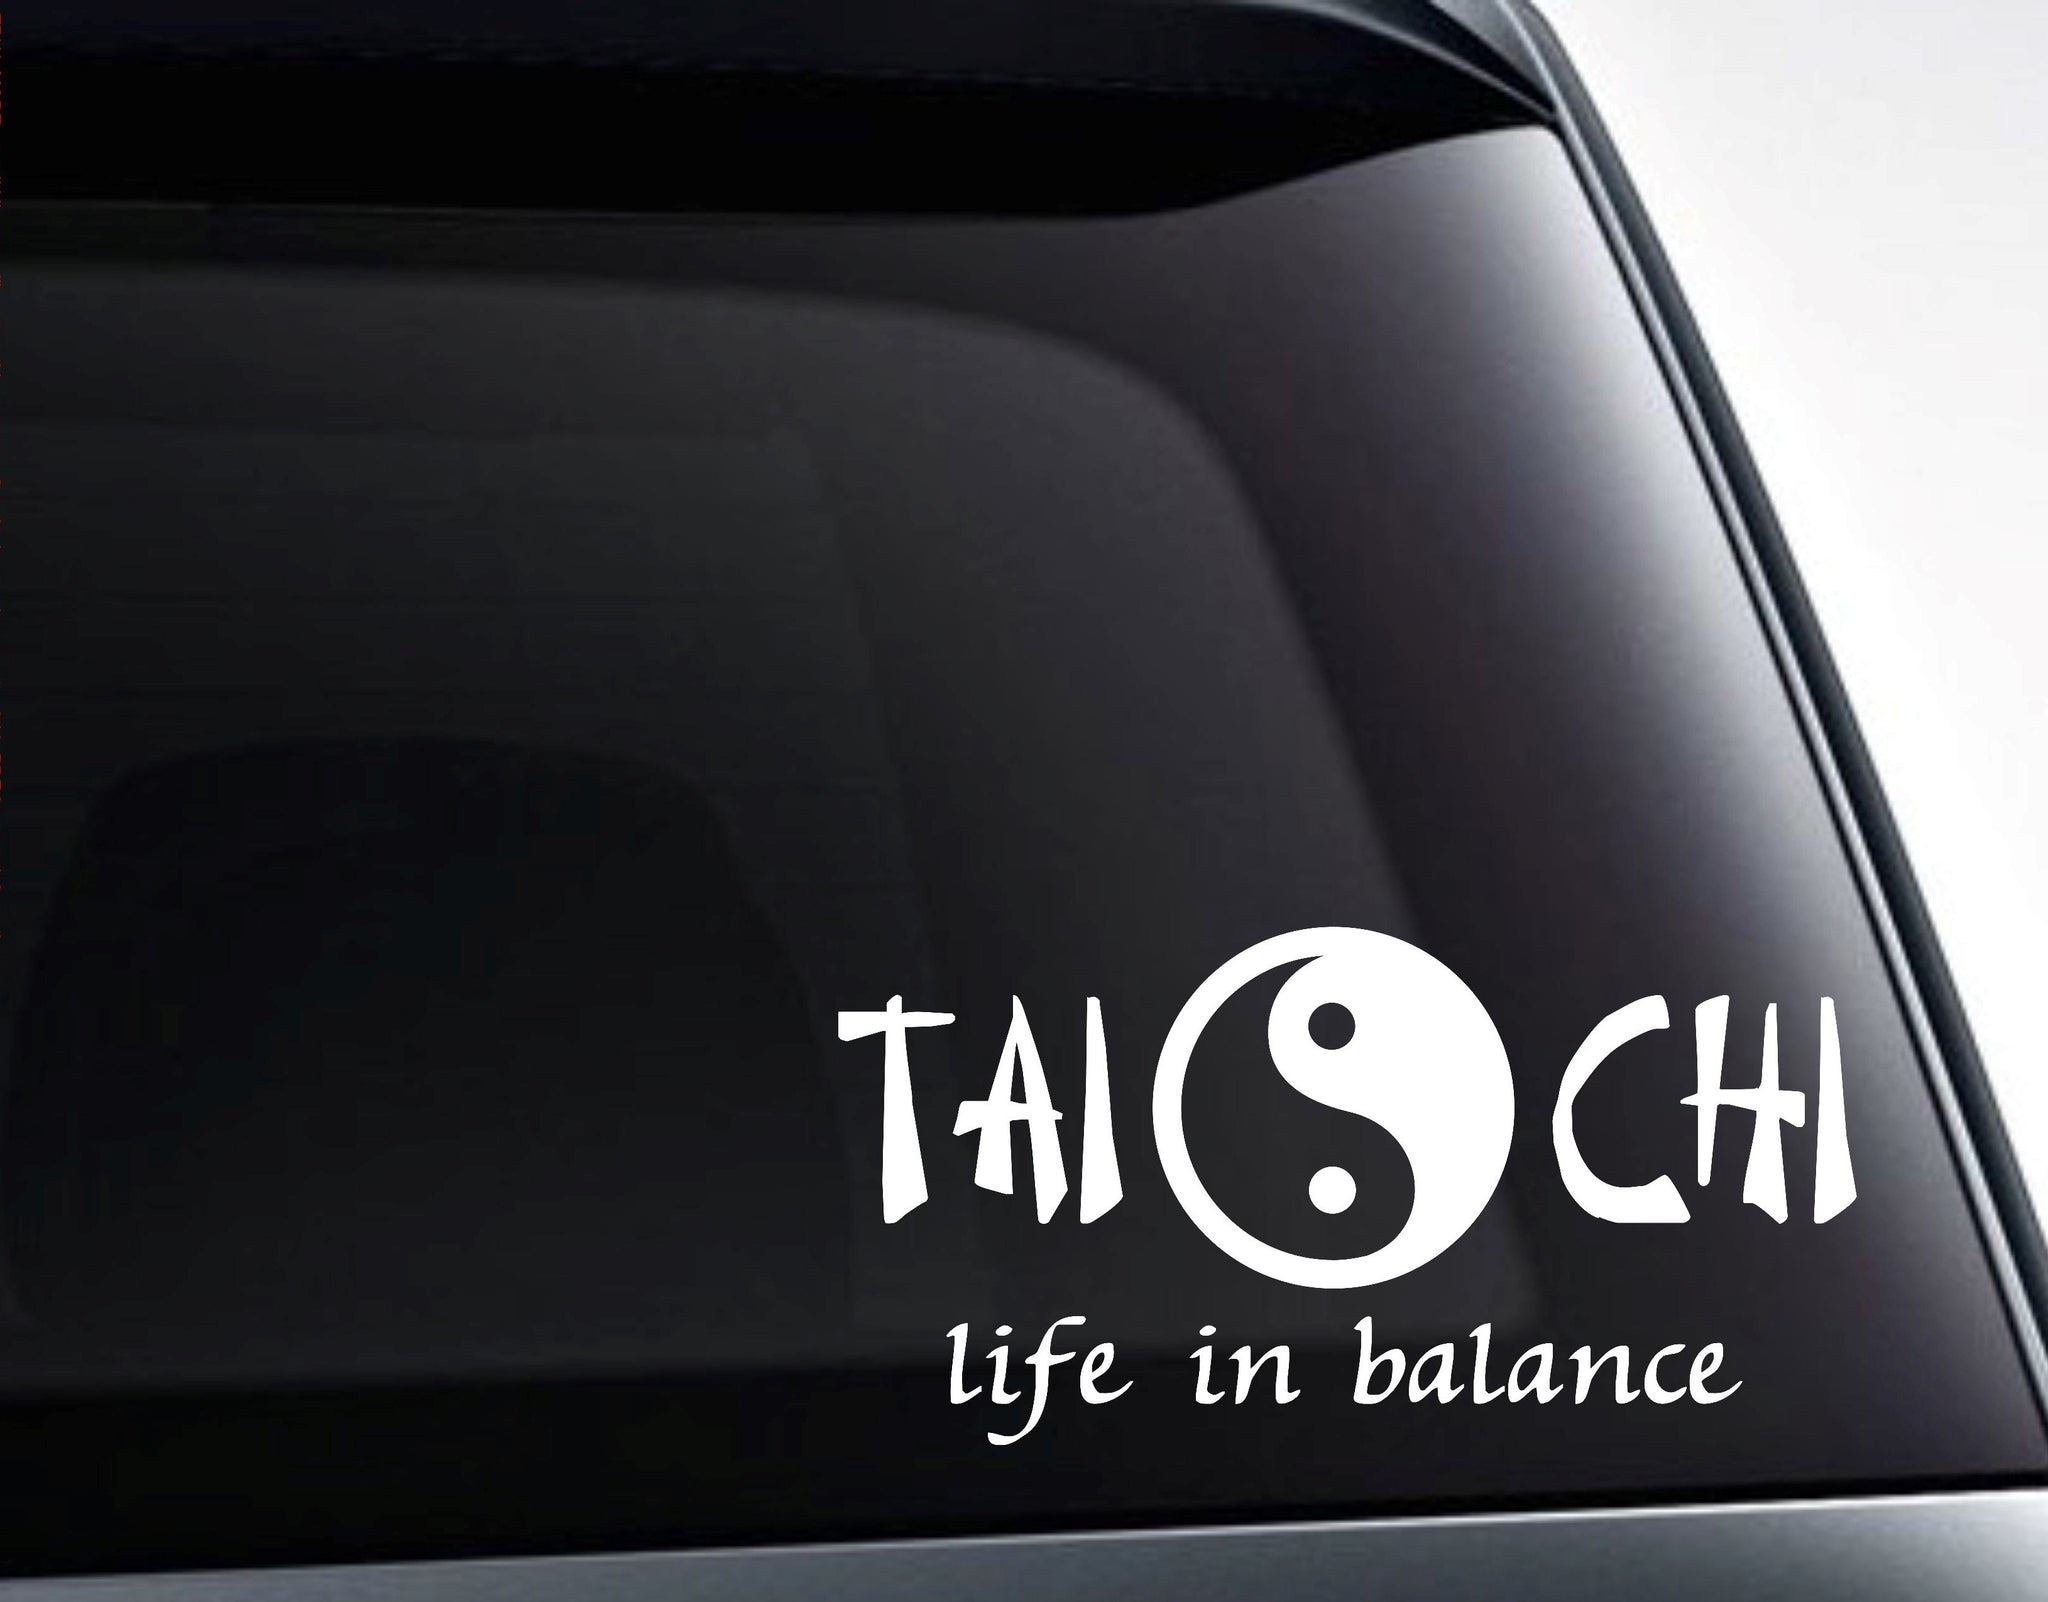 Tai Chi - Life In Balance Vinyl Decal Sticker